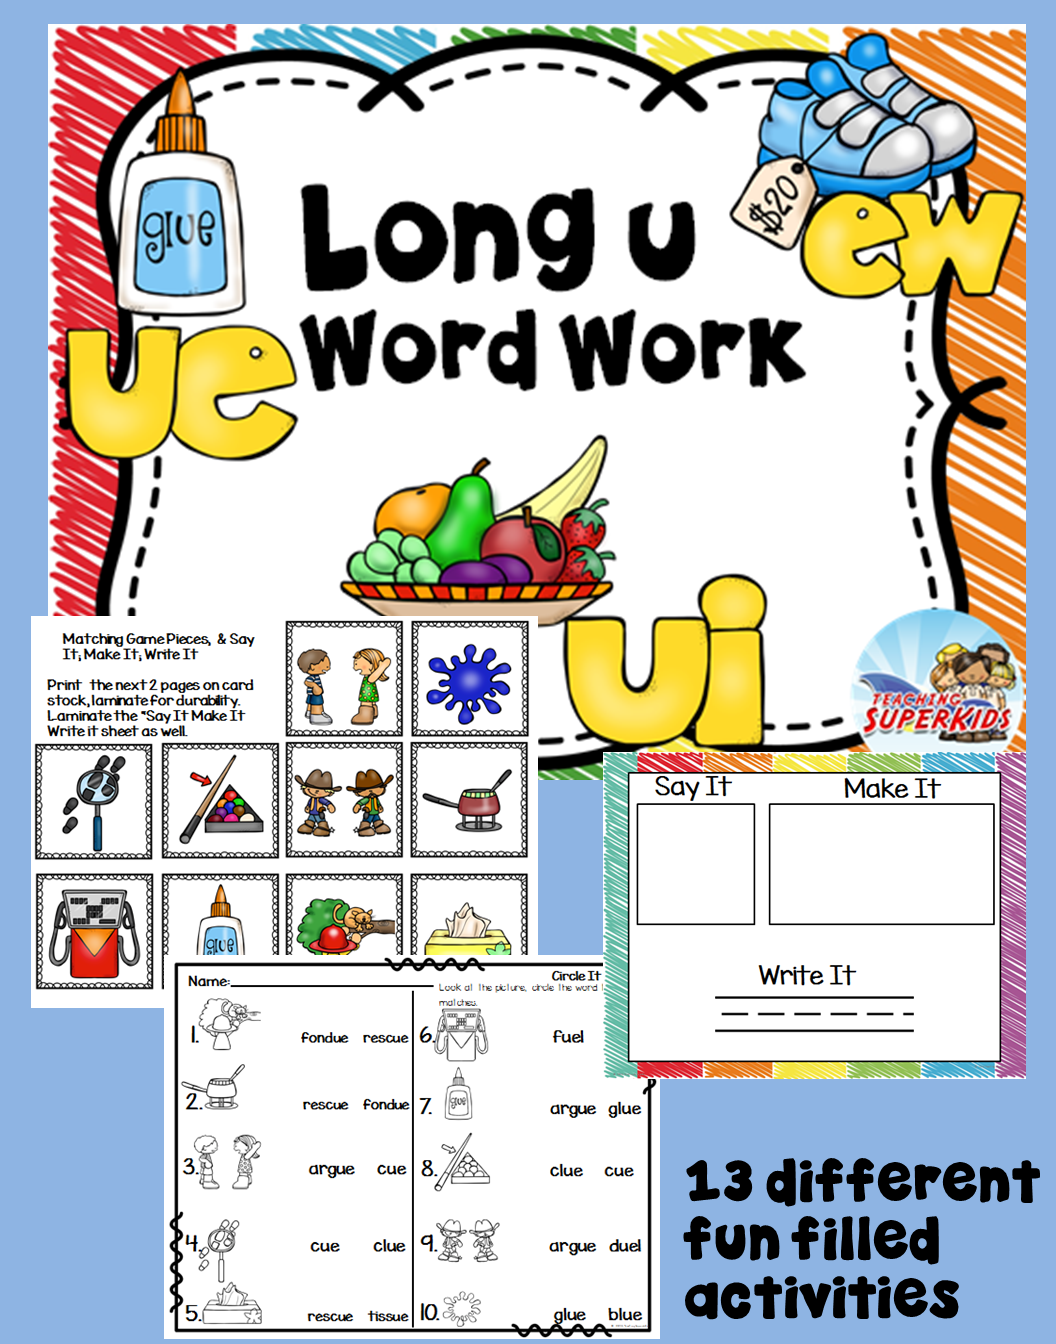 worksheet Wilson Reading Worksheets long u worksheets and centers word work wilson reading program centers